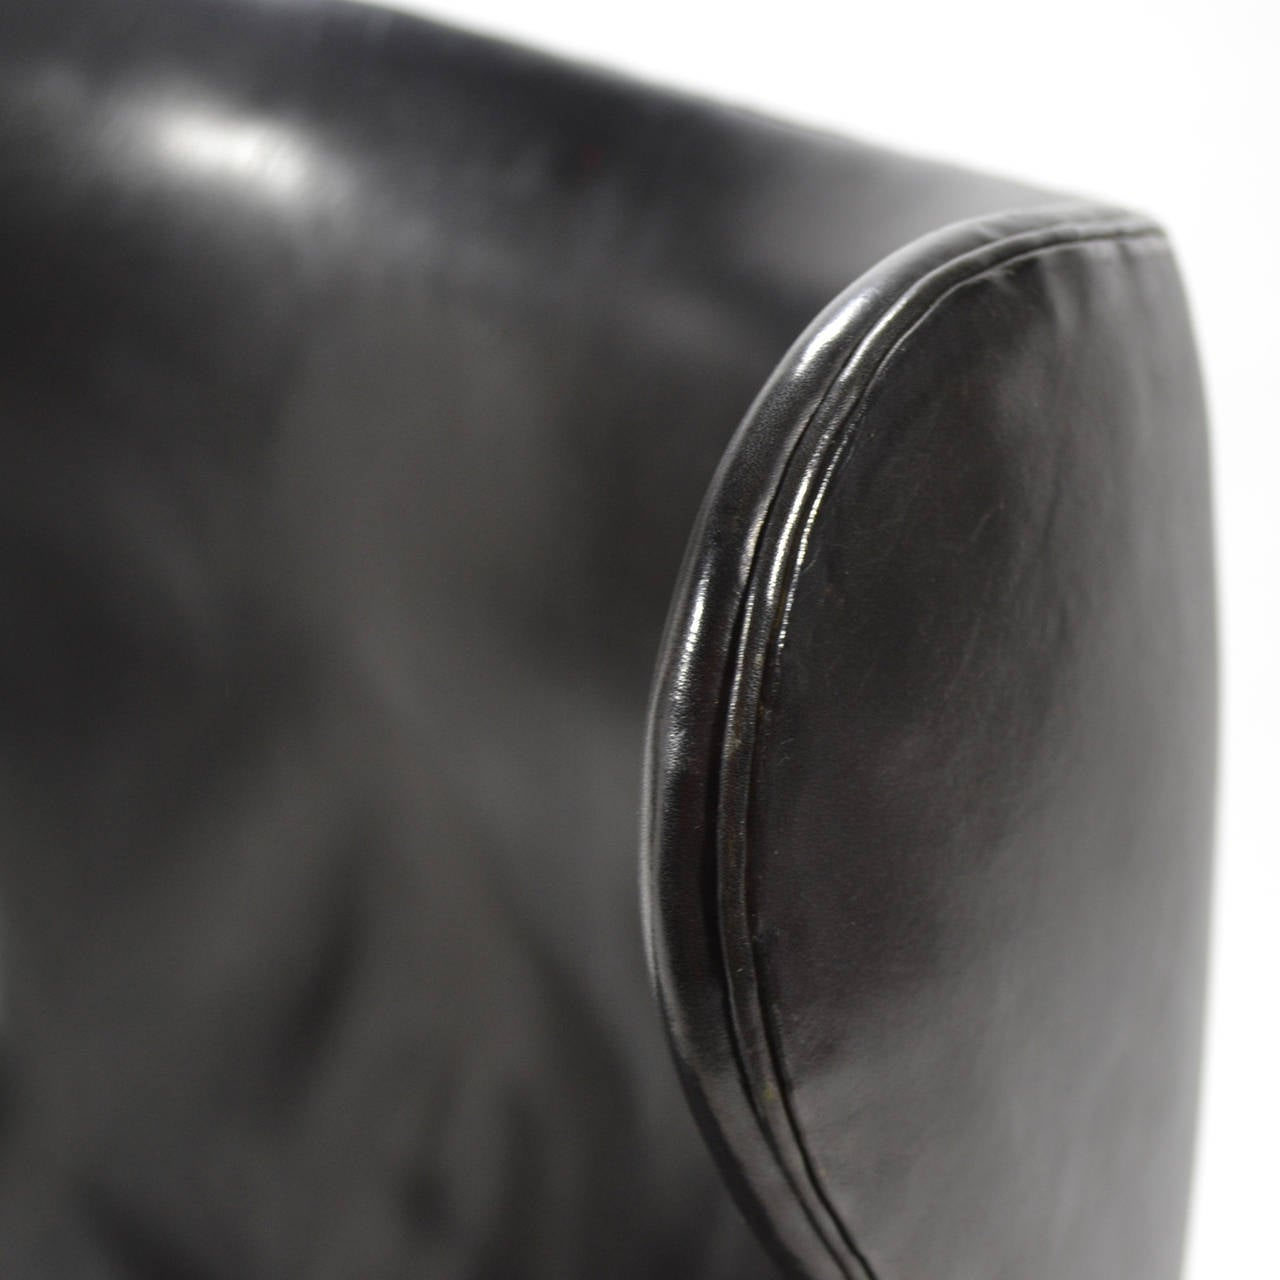 Arne Jacobsen Early Egg Chair in Original Black Leather For Sale 2